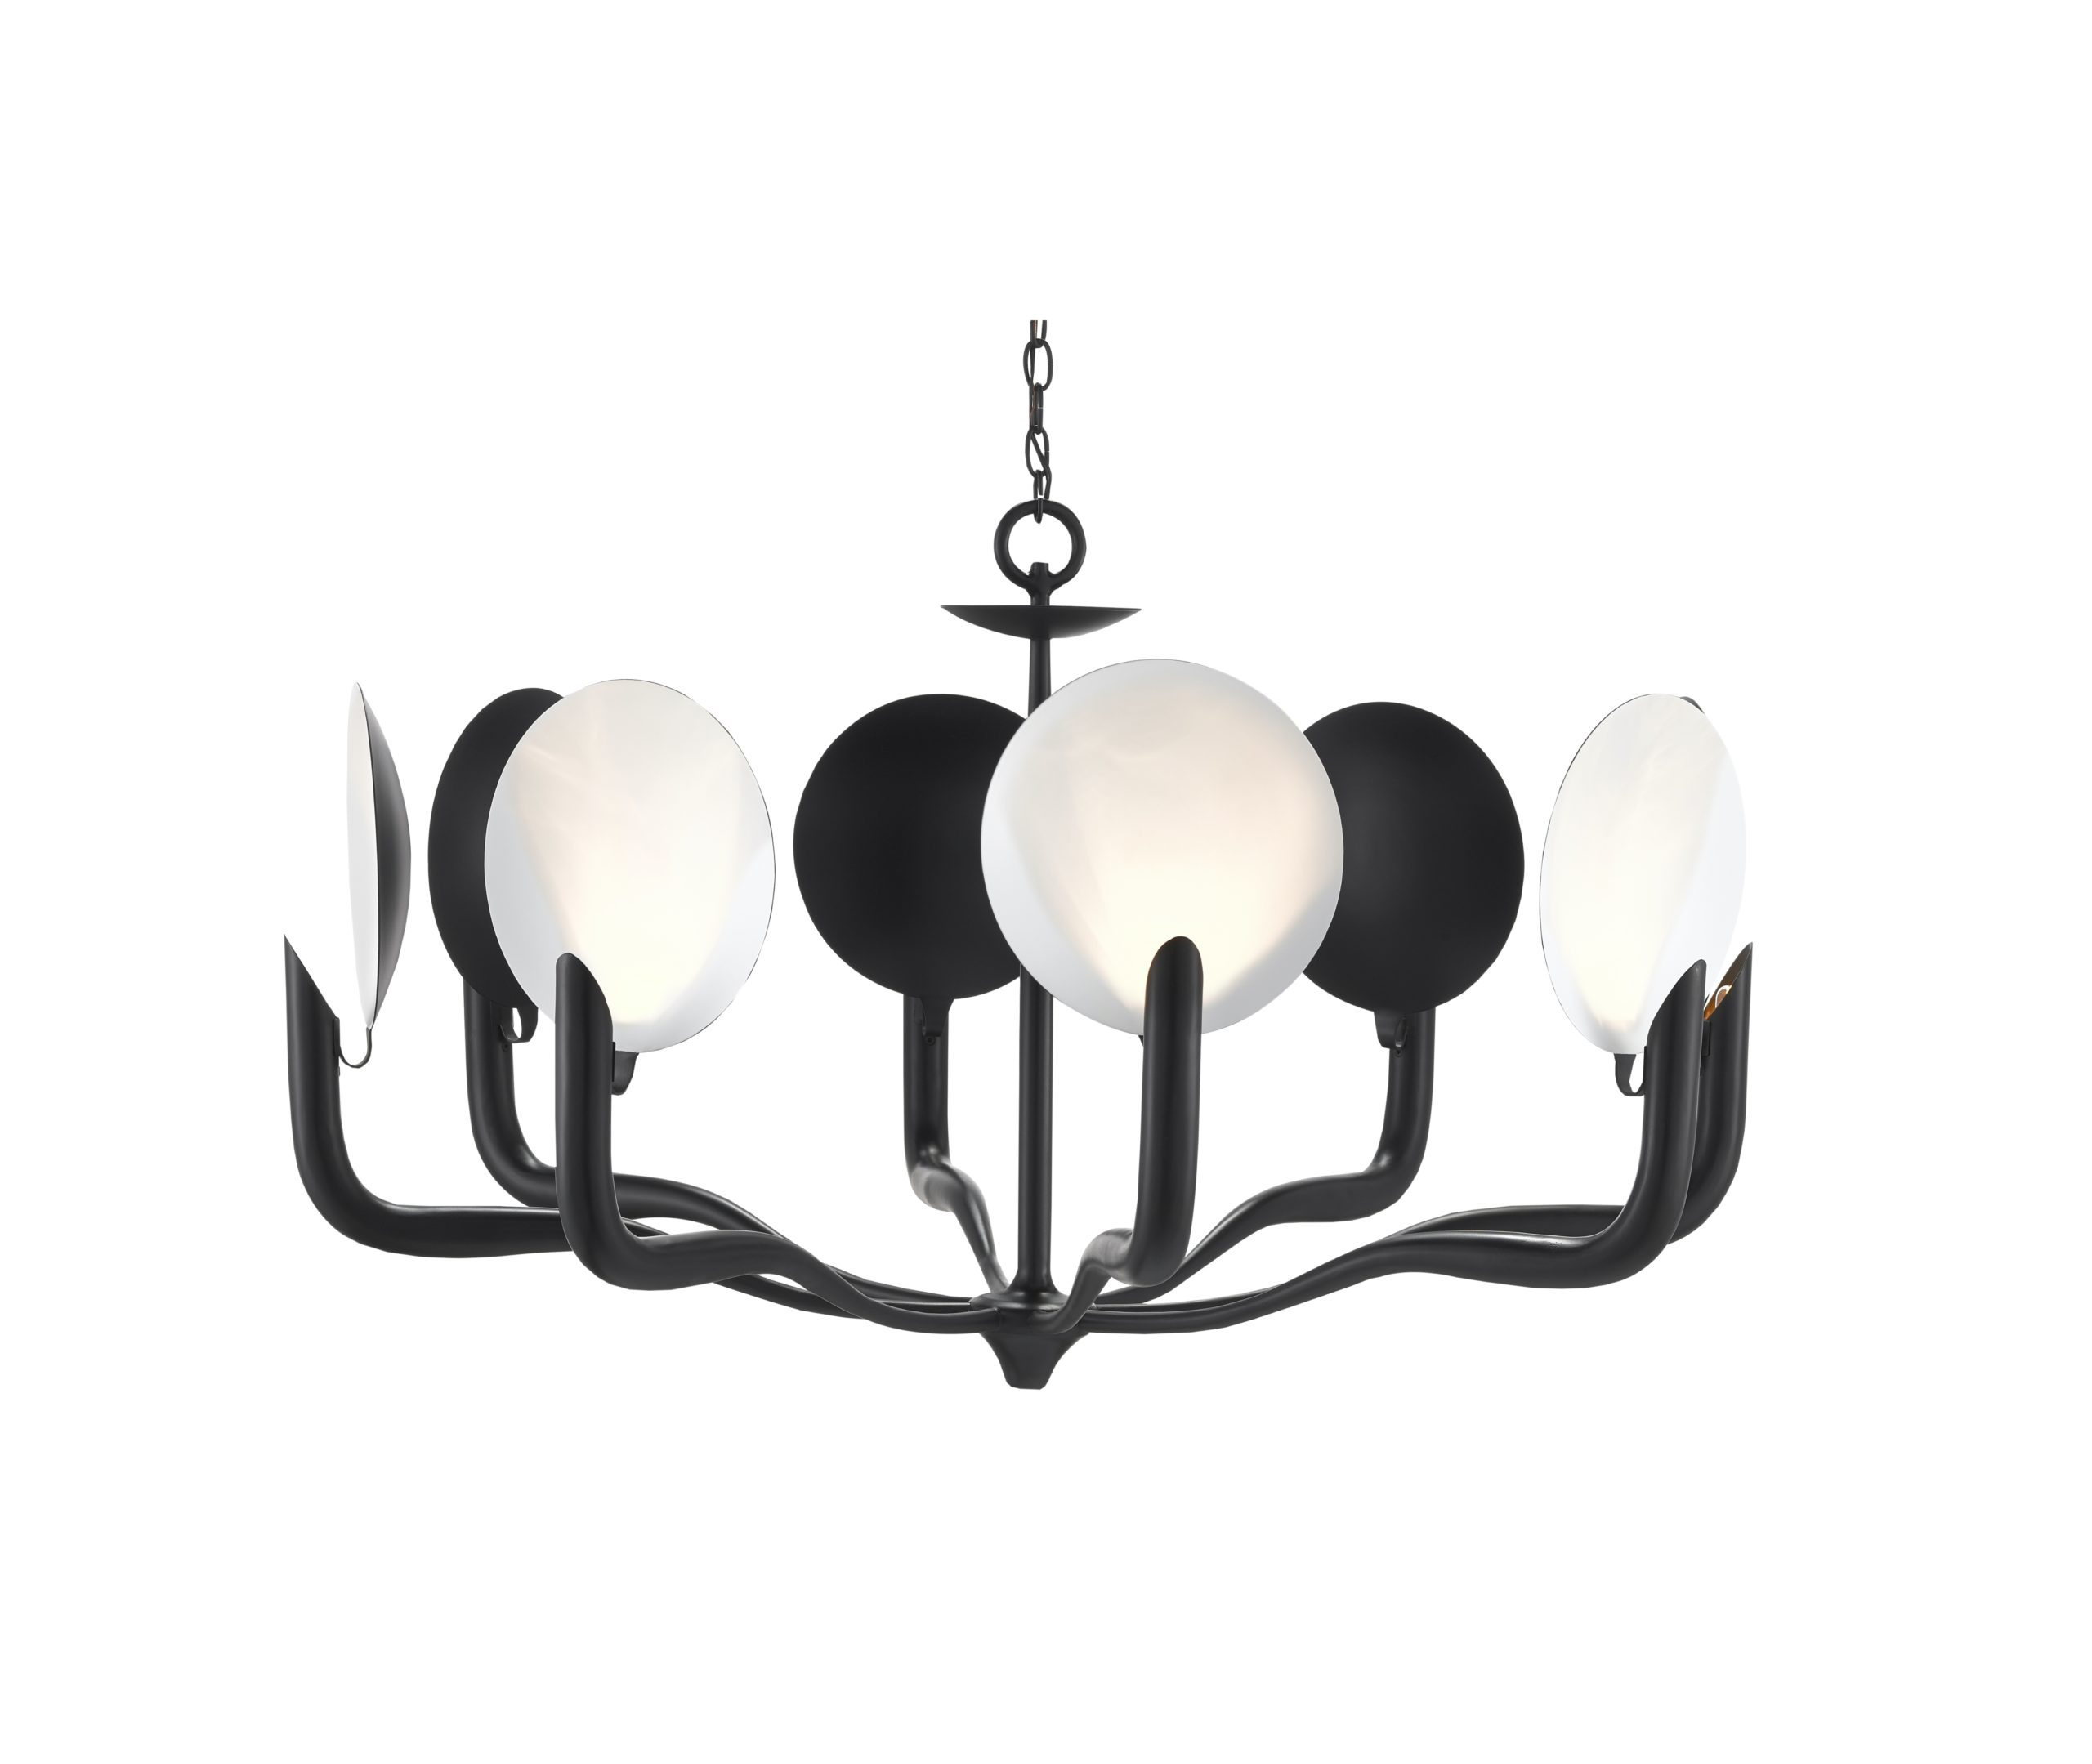 NYDC_WNWN_currey_and_co_products_tirtoff_chandelier_9000-0759